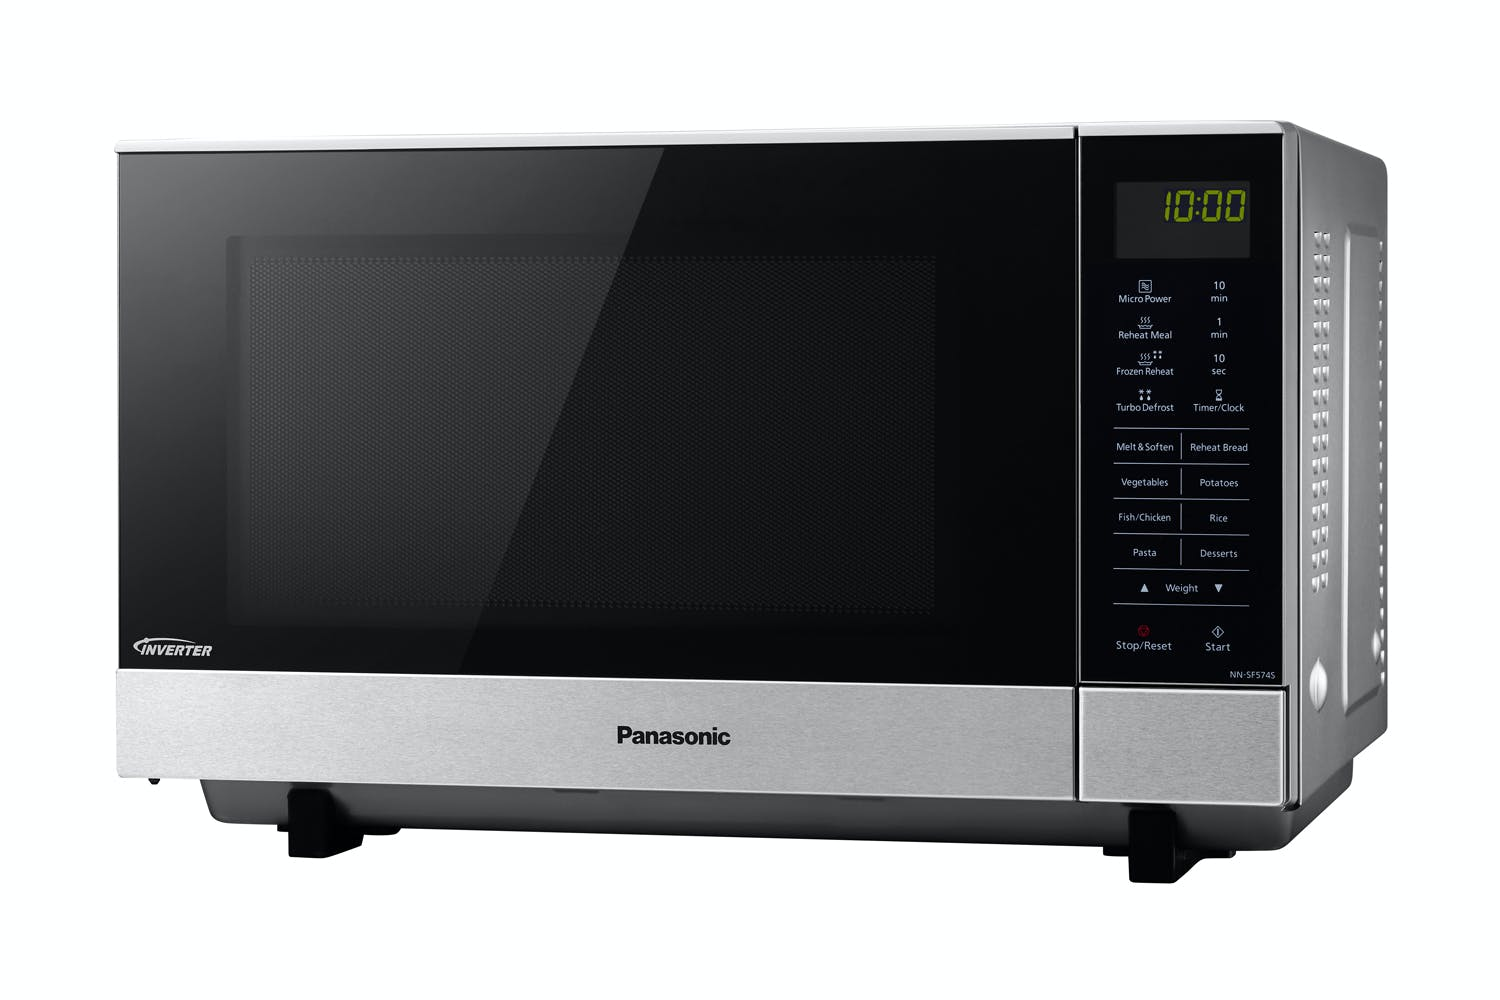 panasonic 27l flatbed inverter microwave oven stainless steel harvey norman new zealand. Black Bedroom Furniture Sets. Home Design Ideas